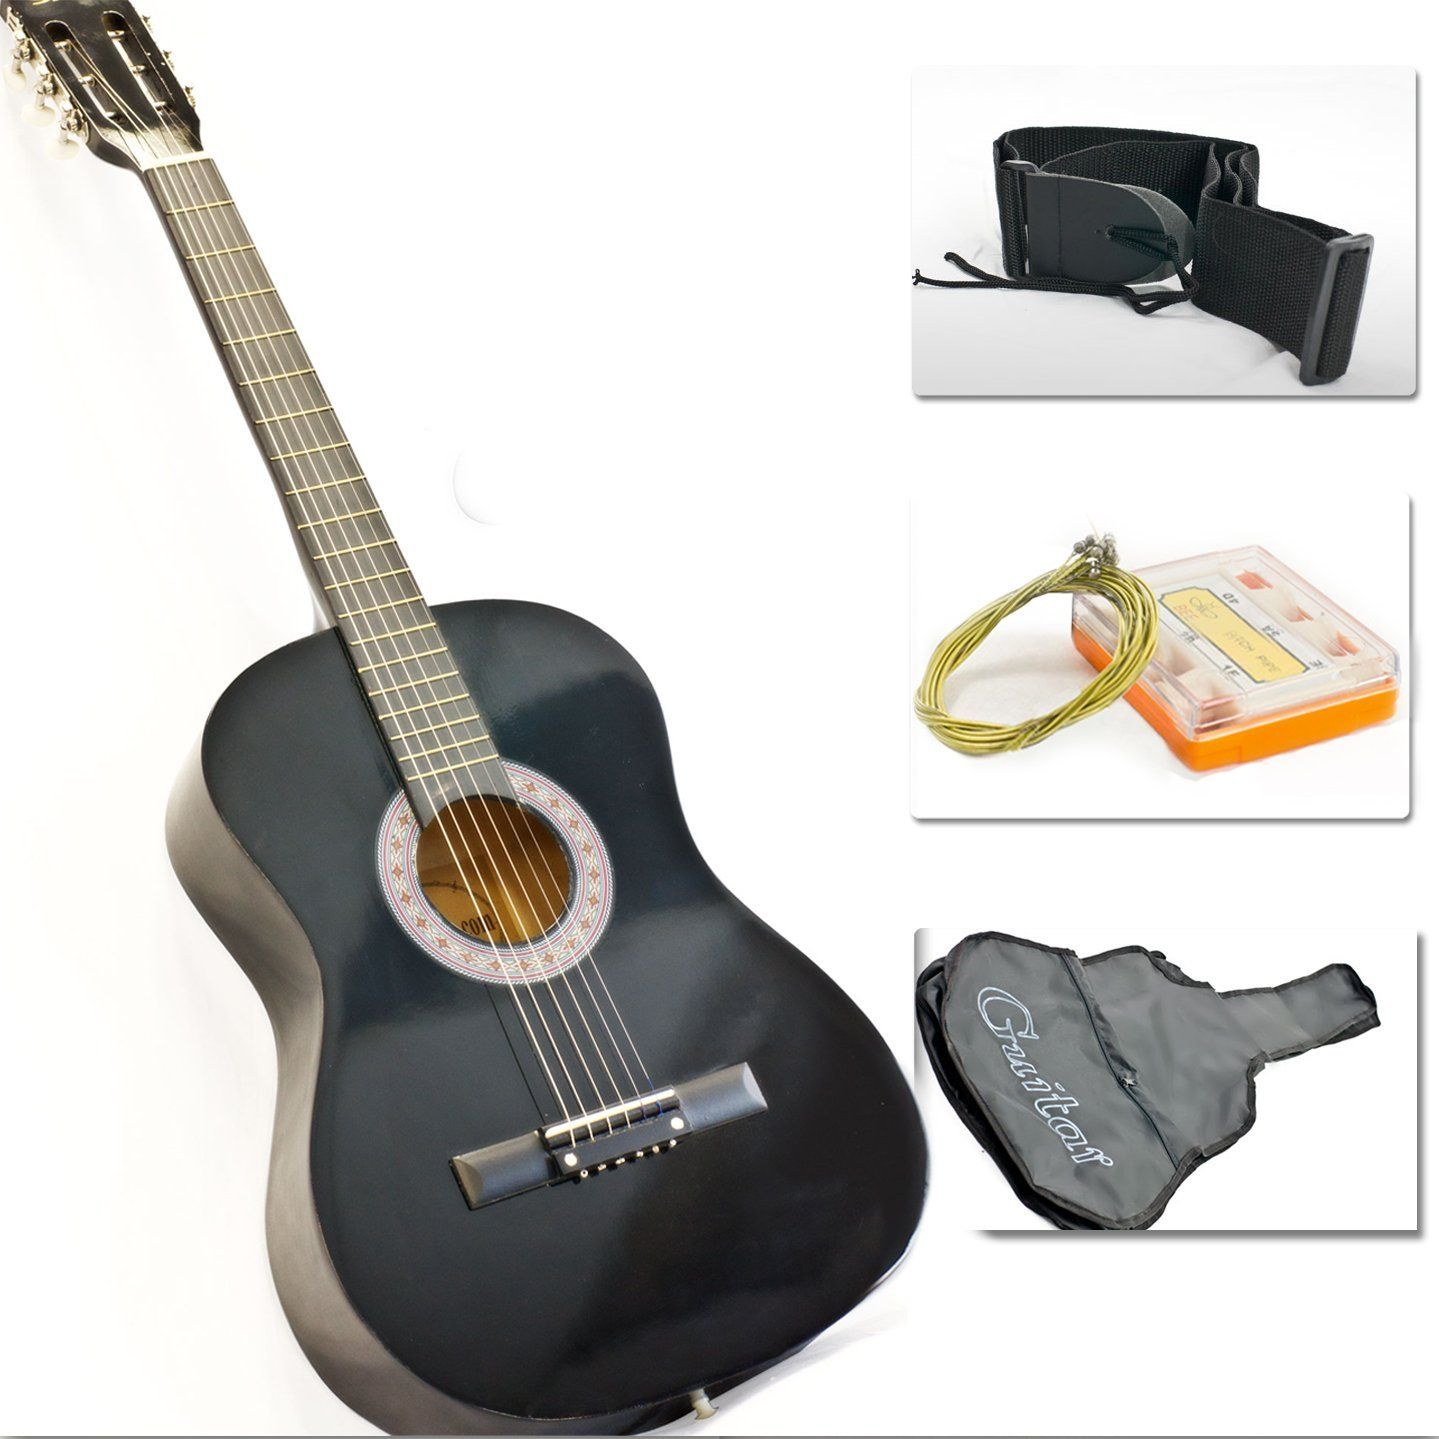 Black Acoustic Guitar With Accessories Combo Kit Beginners Price 34 95 Guitar Accessories Black Acoustic Guitar Acoustic Guitar Accessories